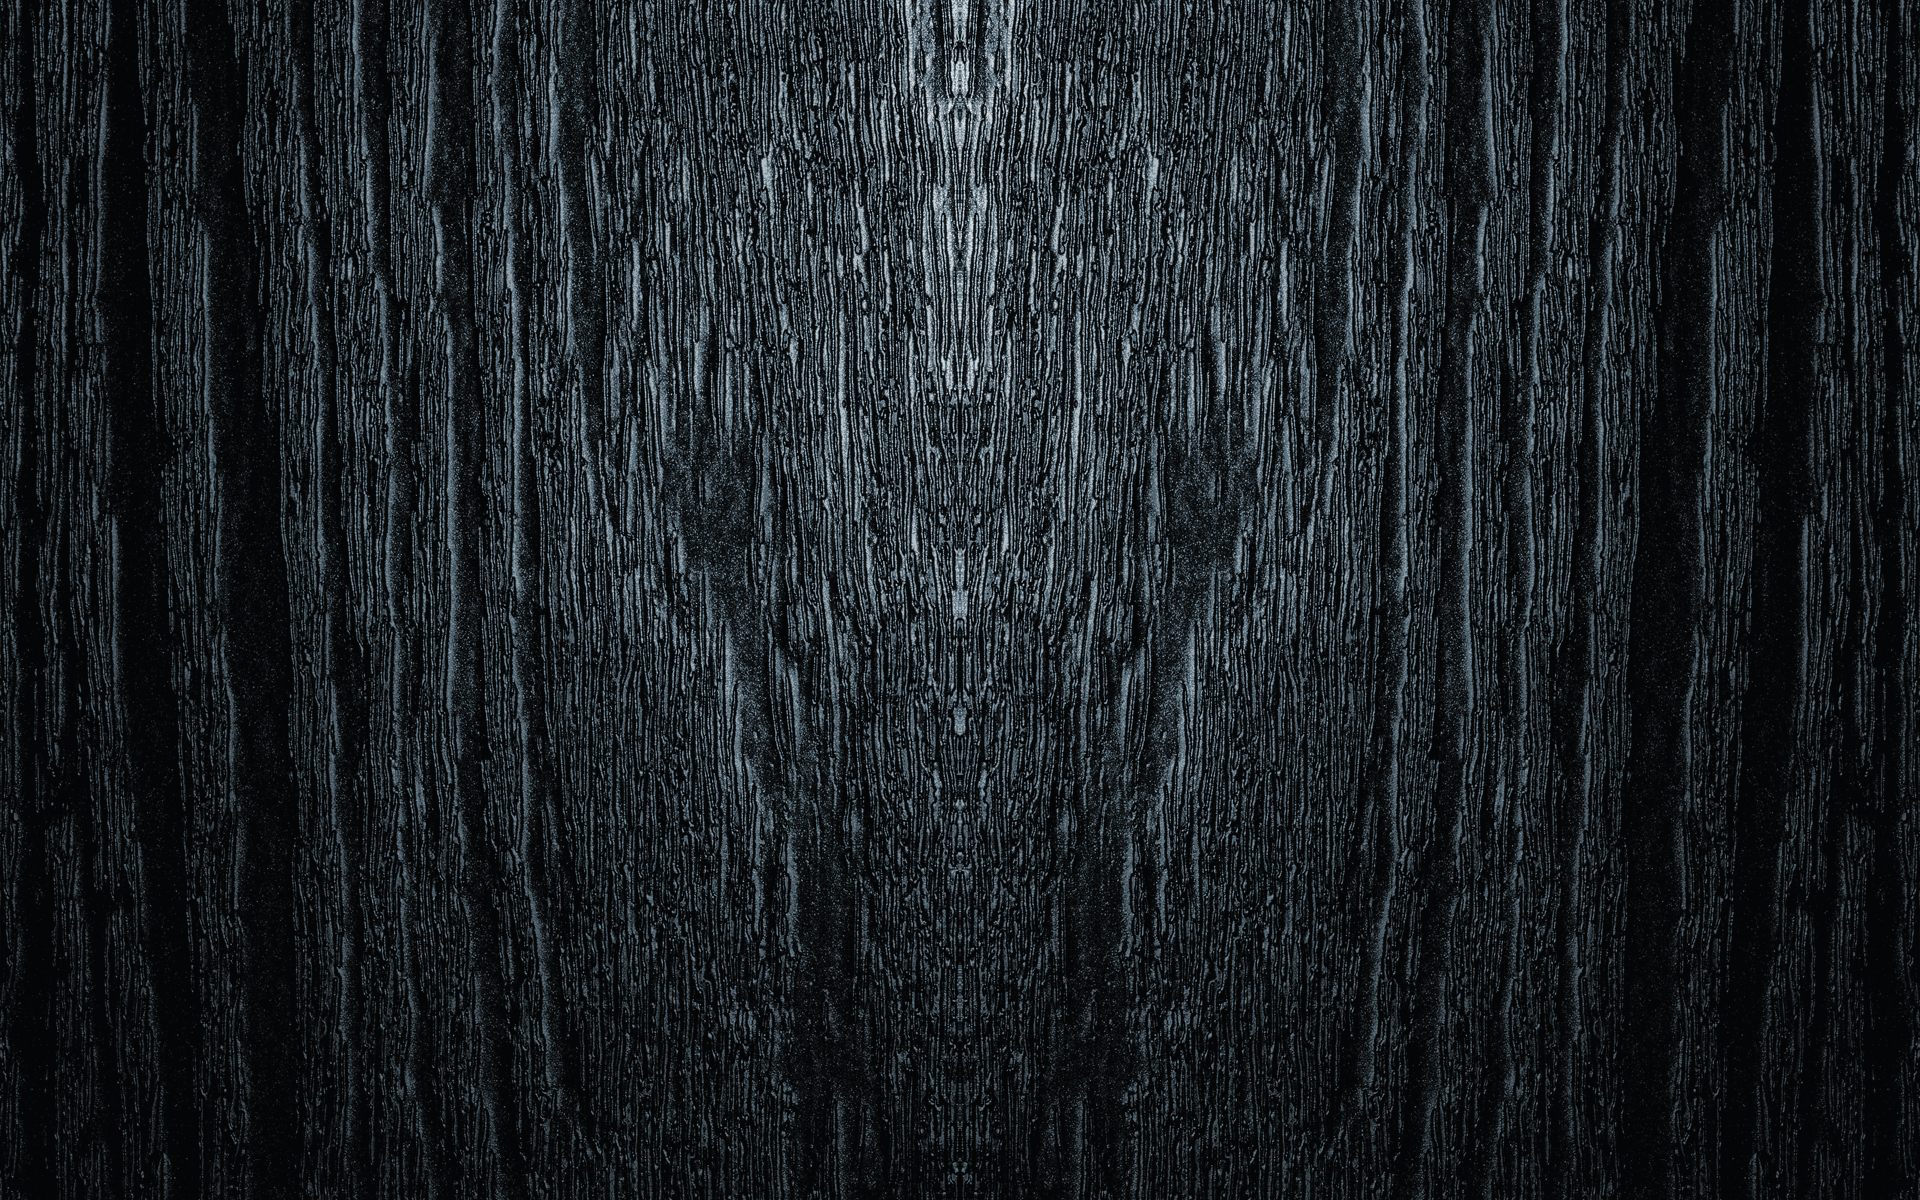 Dark Woods HD Background.